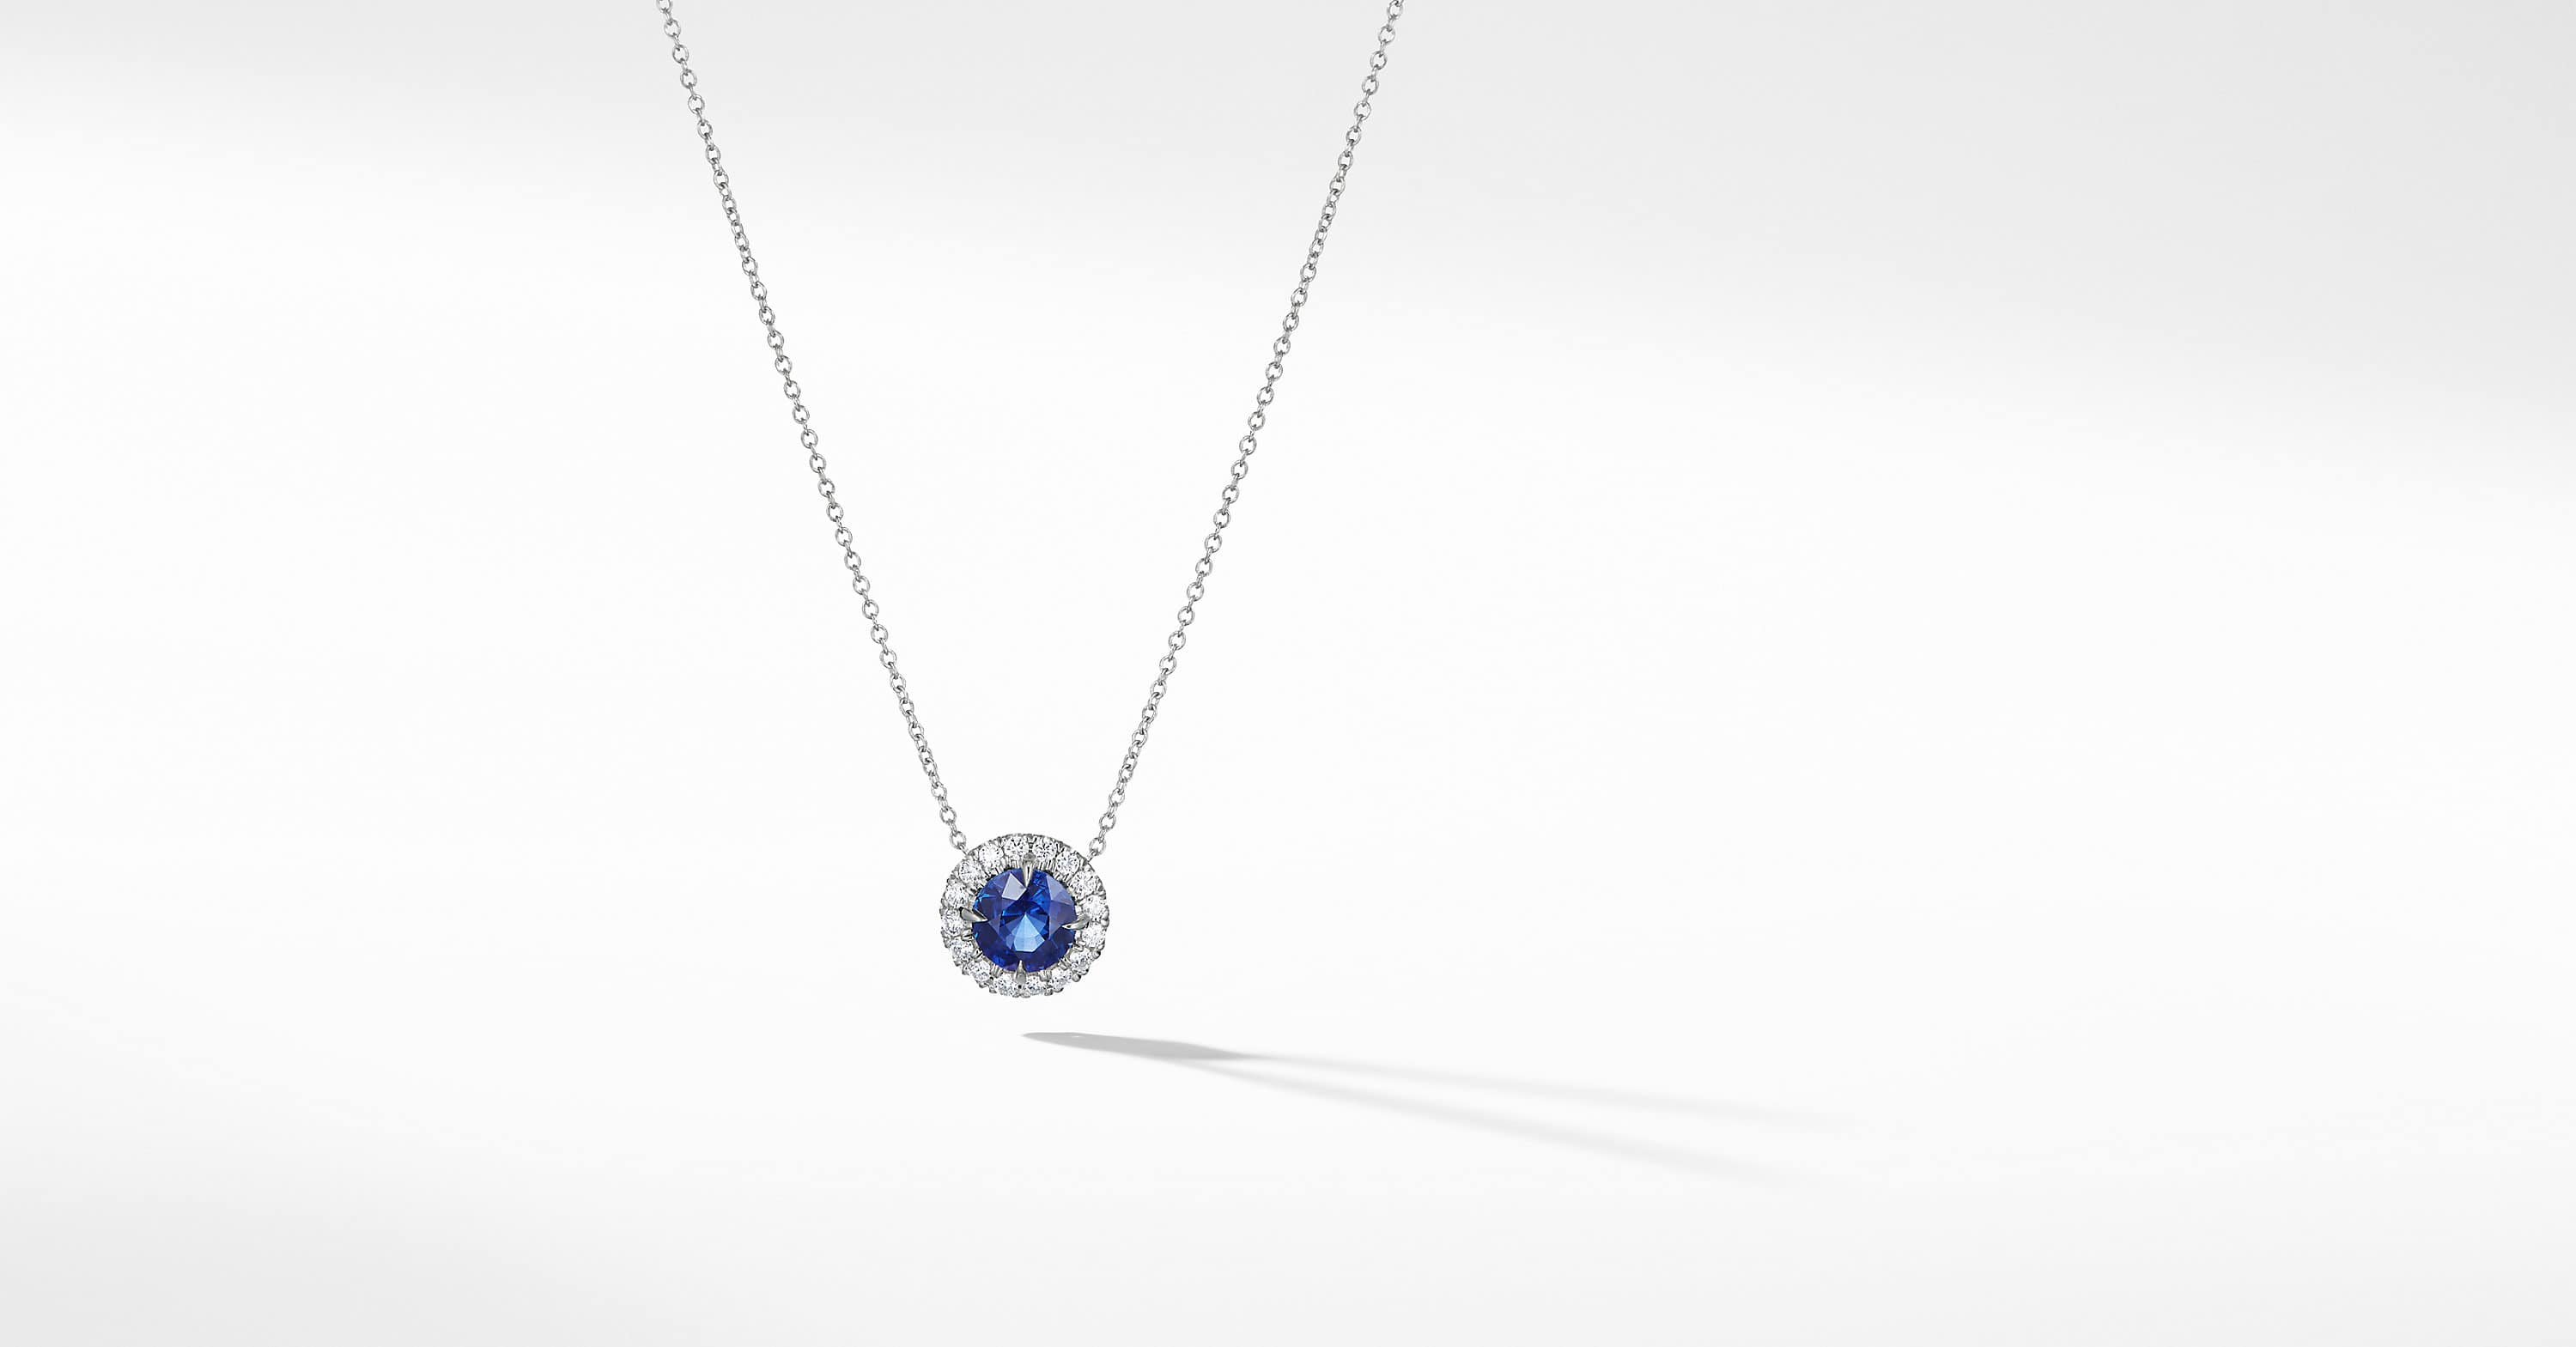 DY Capri Round Pendant Necklace in 18K White Gold with Blue Sapphire and Diamonds